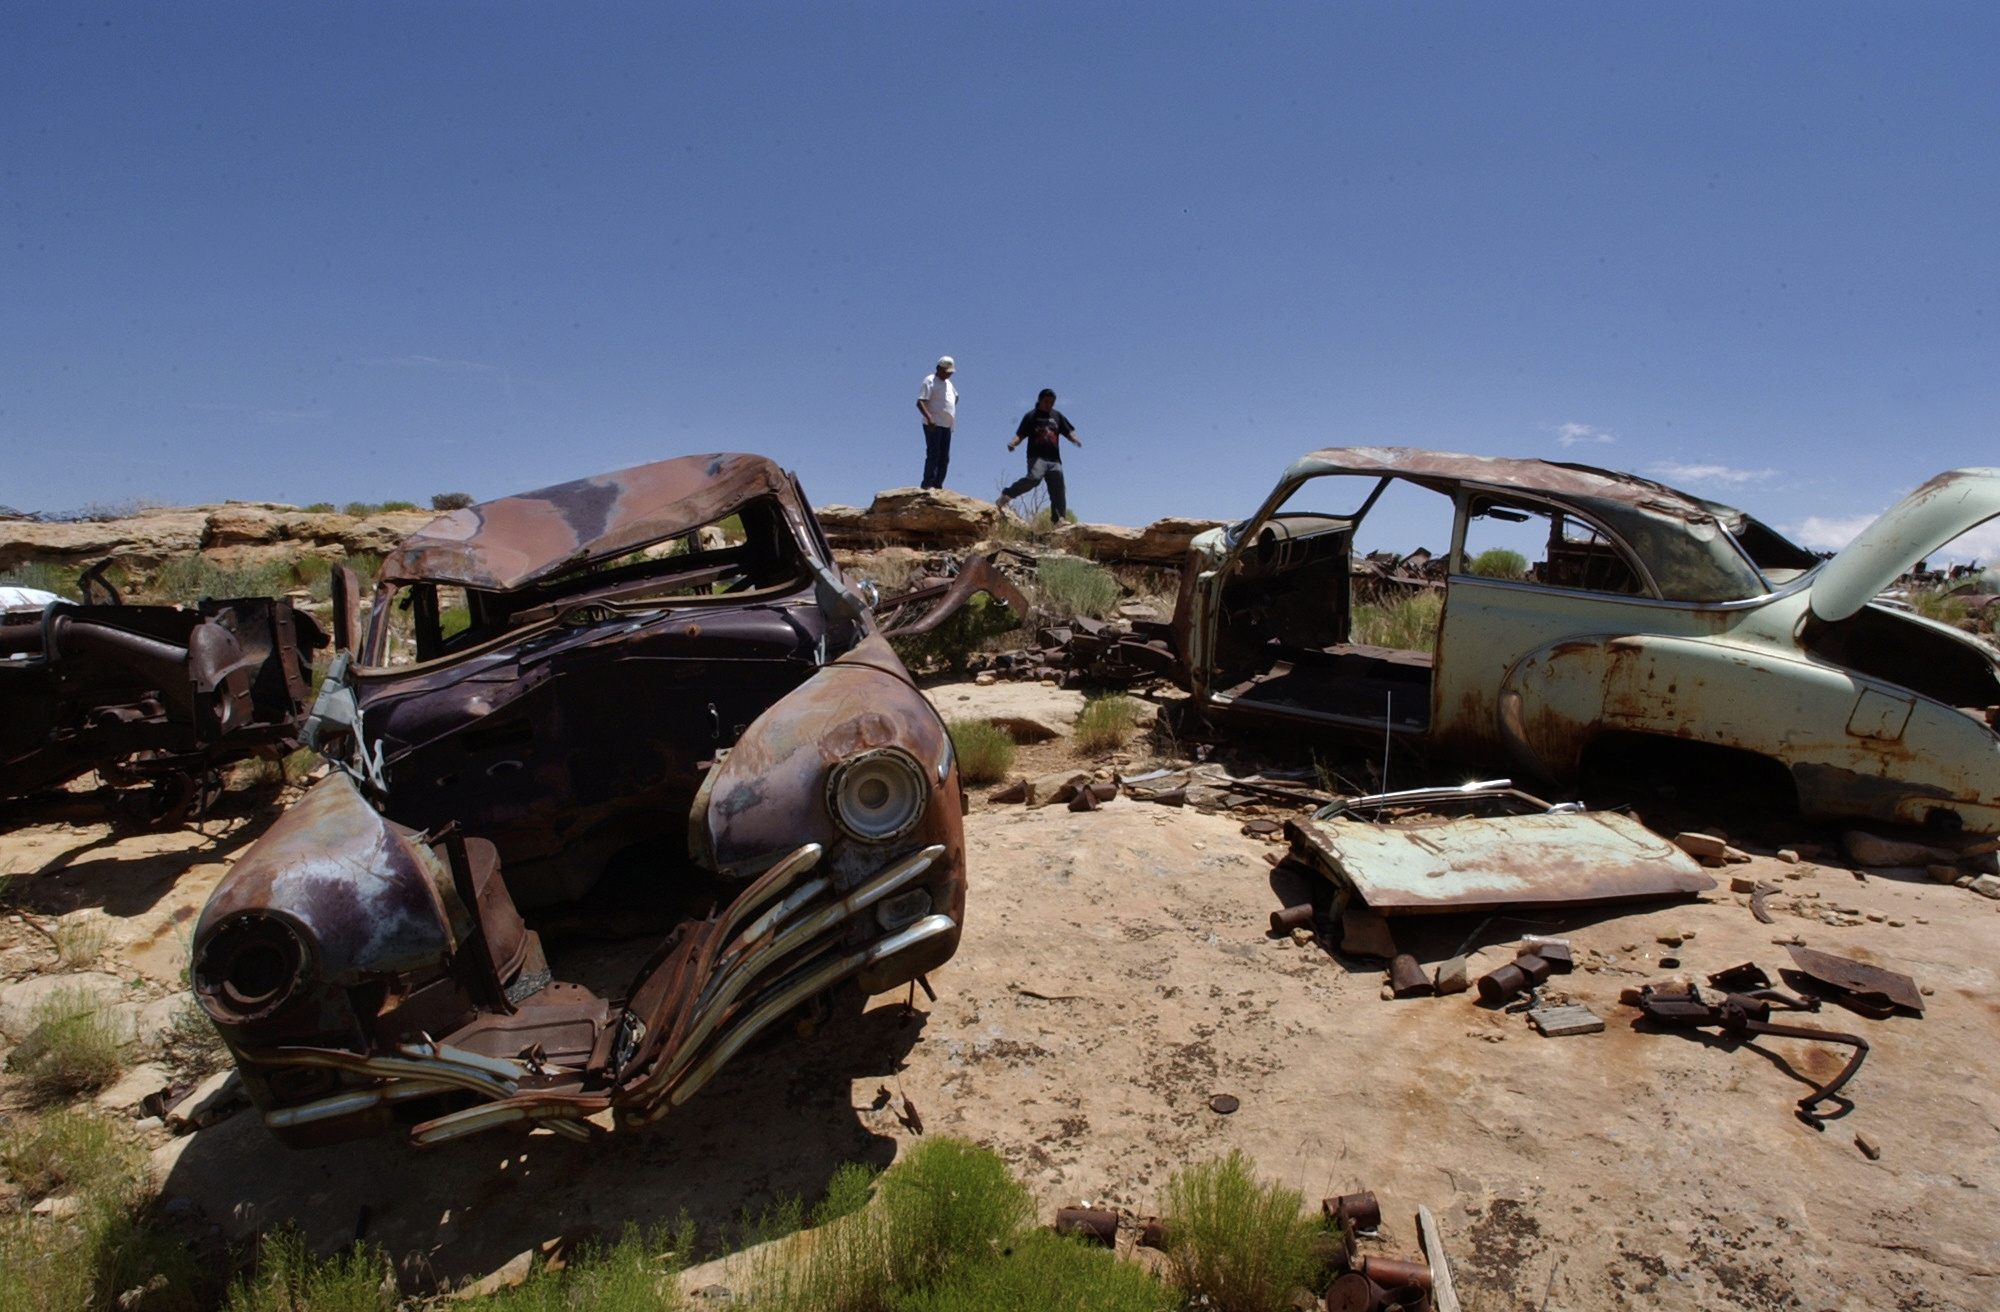 Old cars and contaminated debris lie near the abandoned uranium mining site in the Navajos' Cane Valley, near the Arizona-Utah line. ©Gail Fisher Los Angeles Times